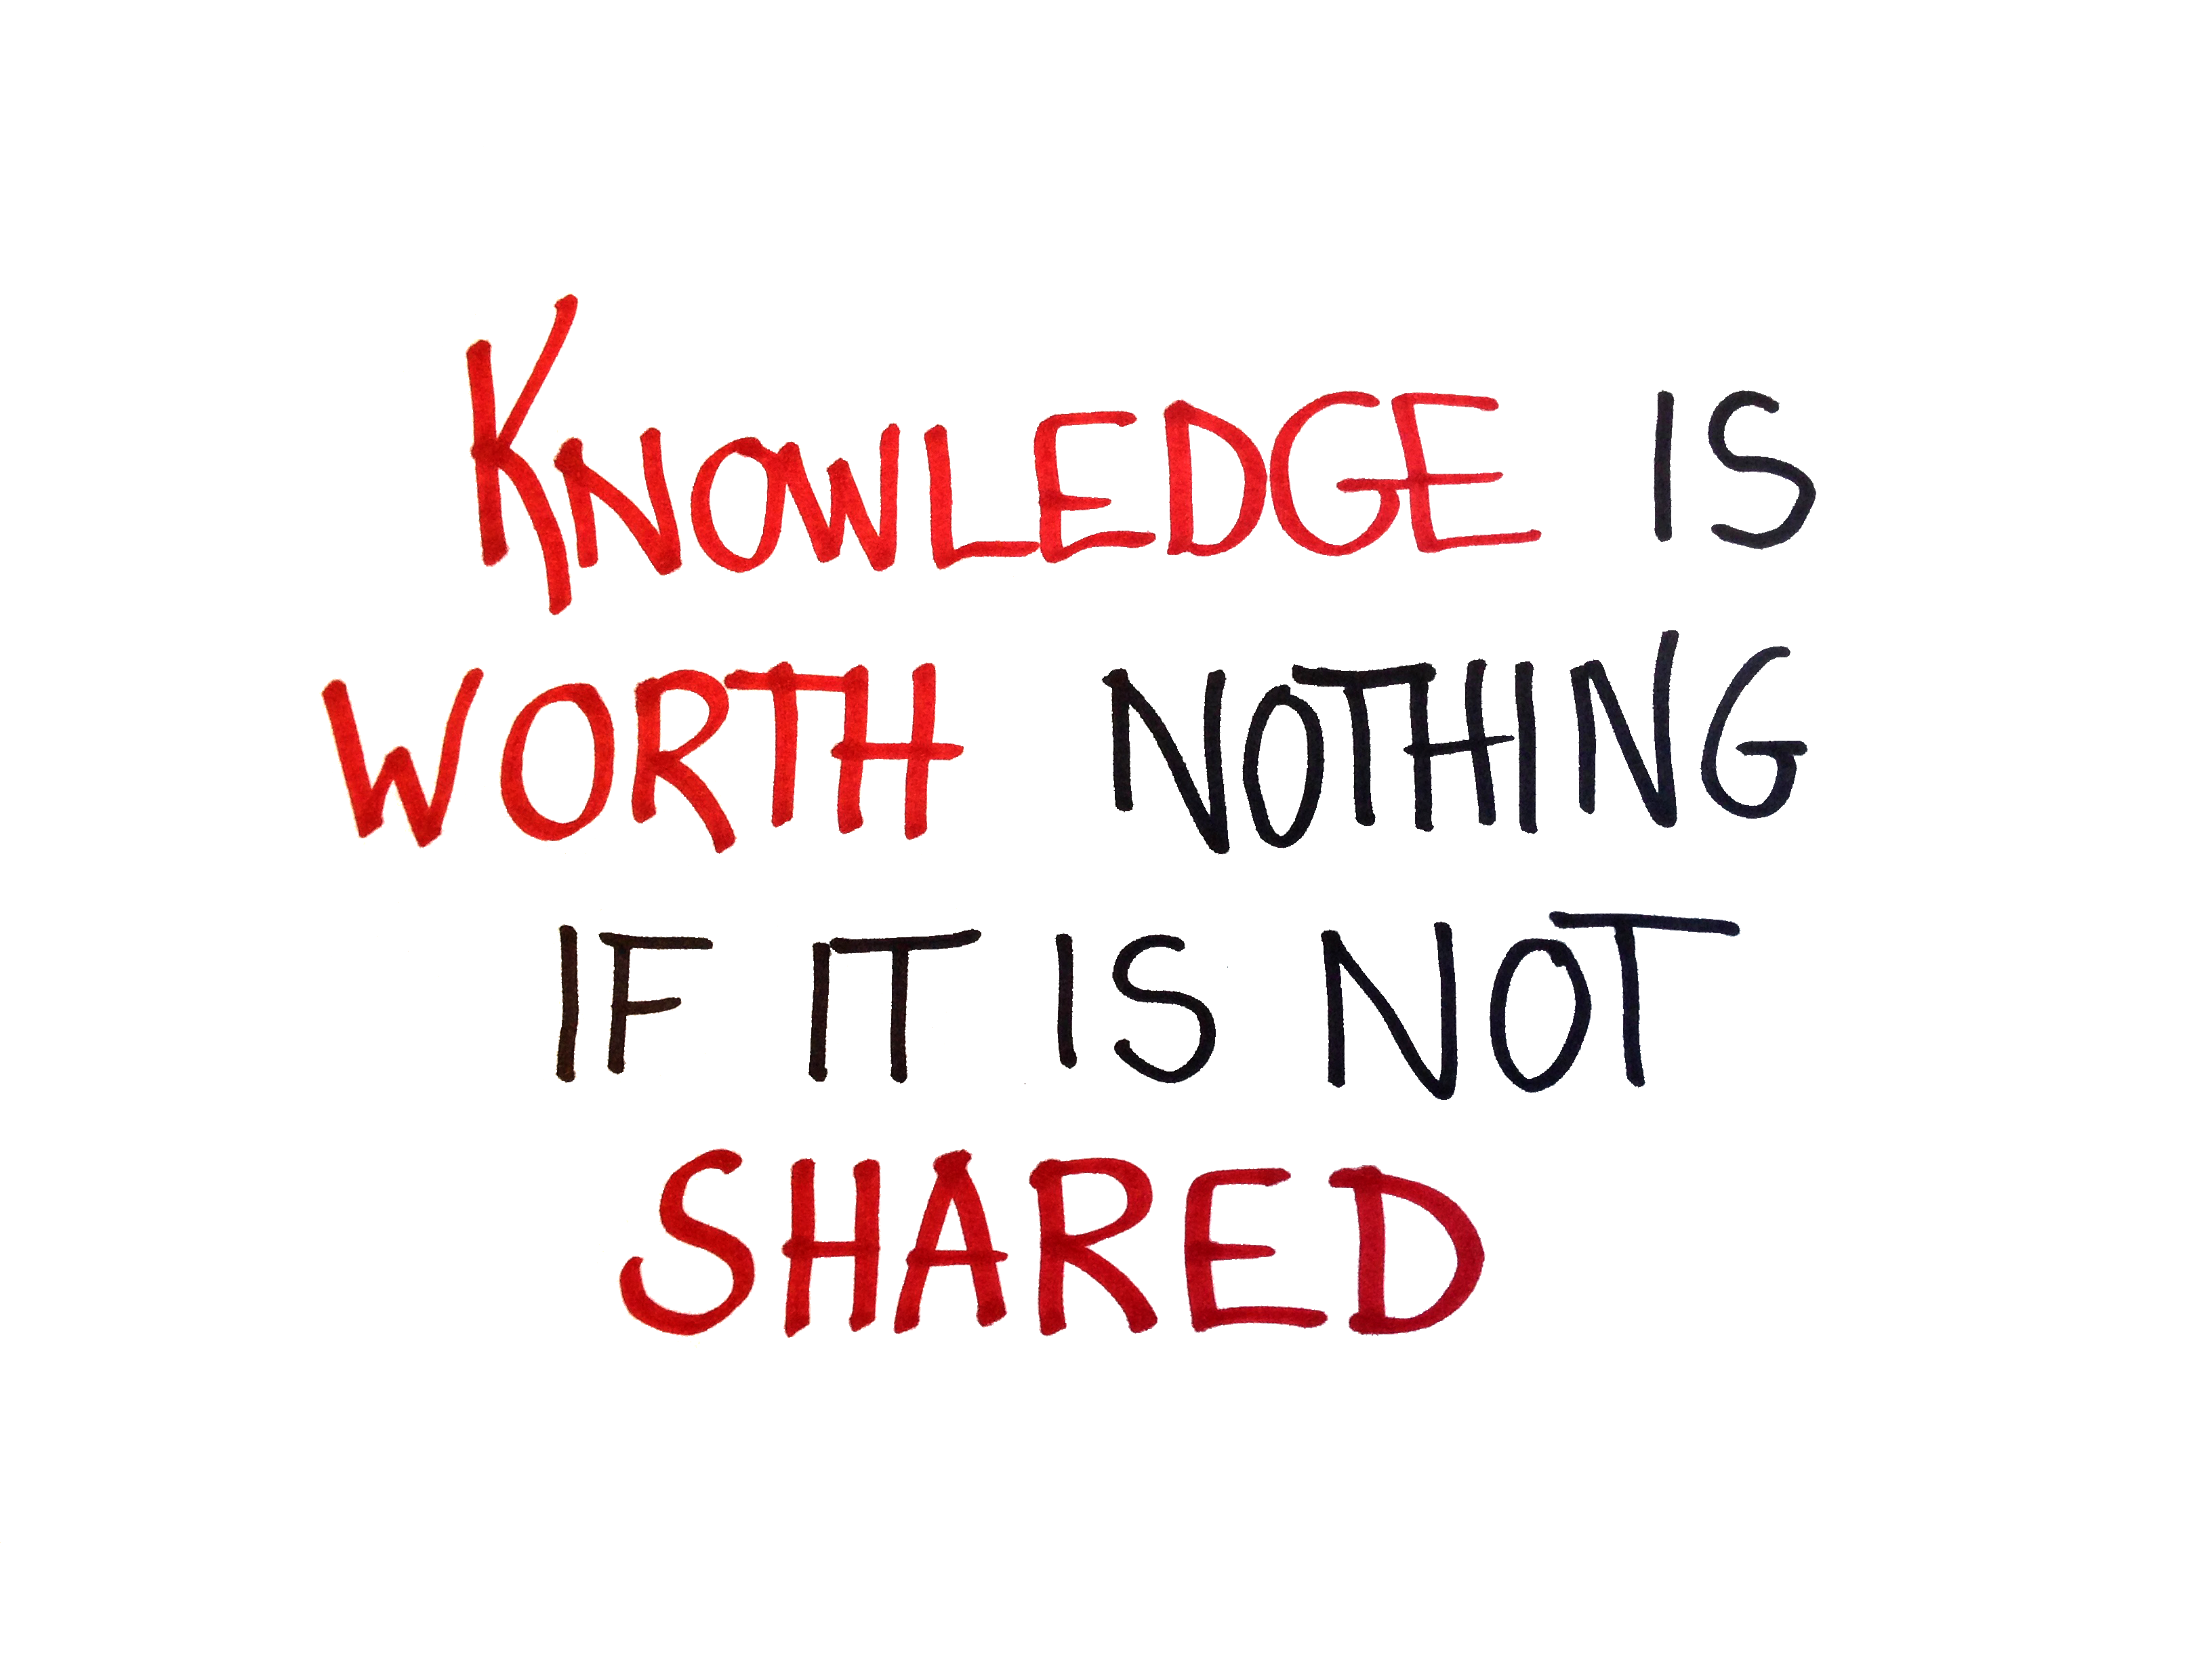 Knowledge is worth nothing if it is not shared